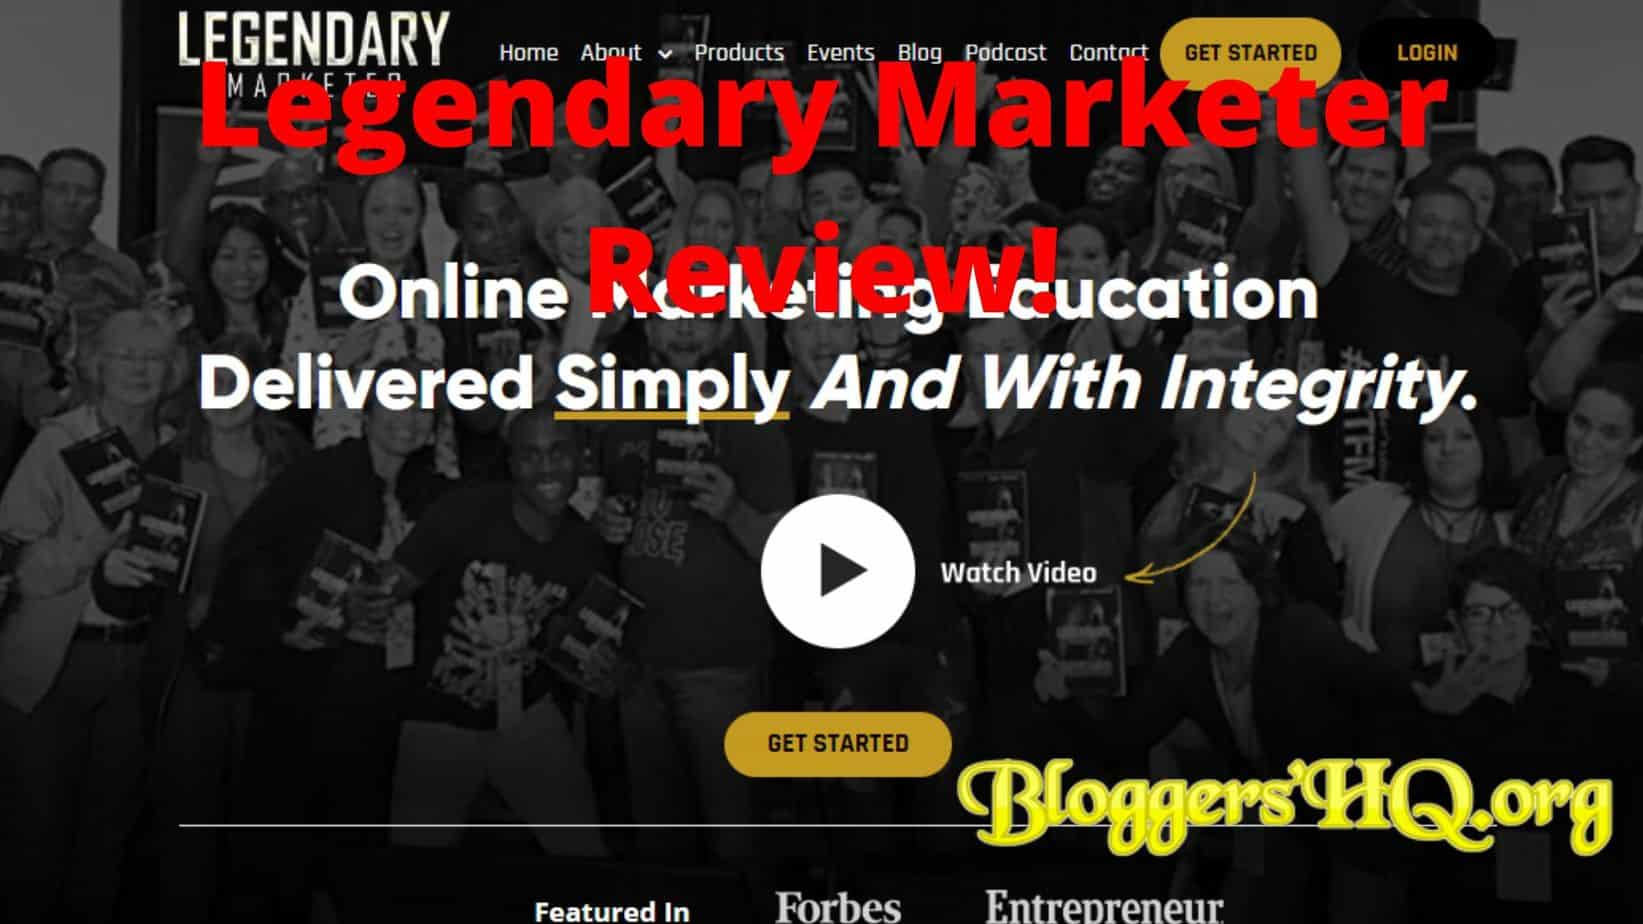 Internet Marketing Program  Legendary Marketer Savings Coupon Code  2020